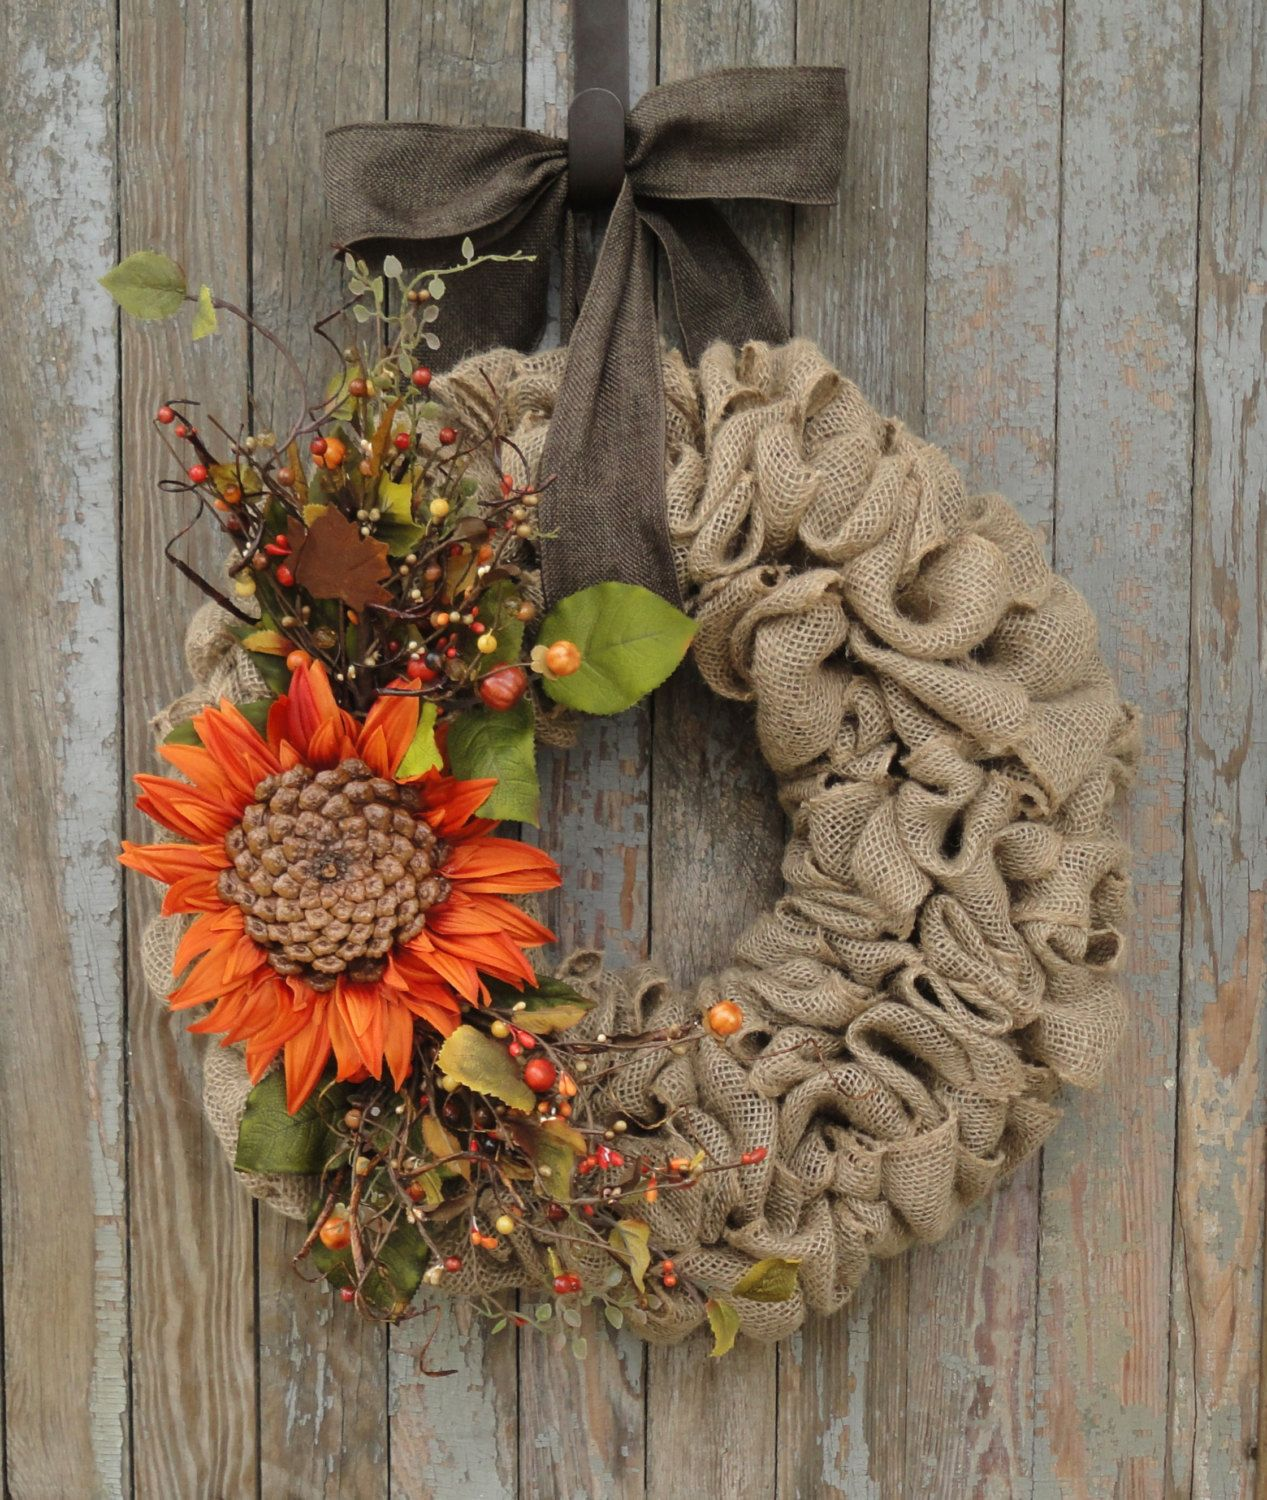 Sunflower Burlap Wreath, Fall Burlap Wreath, Autumn Burlap ...